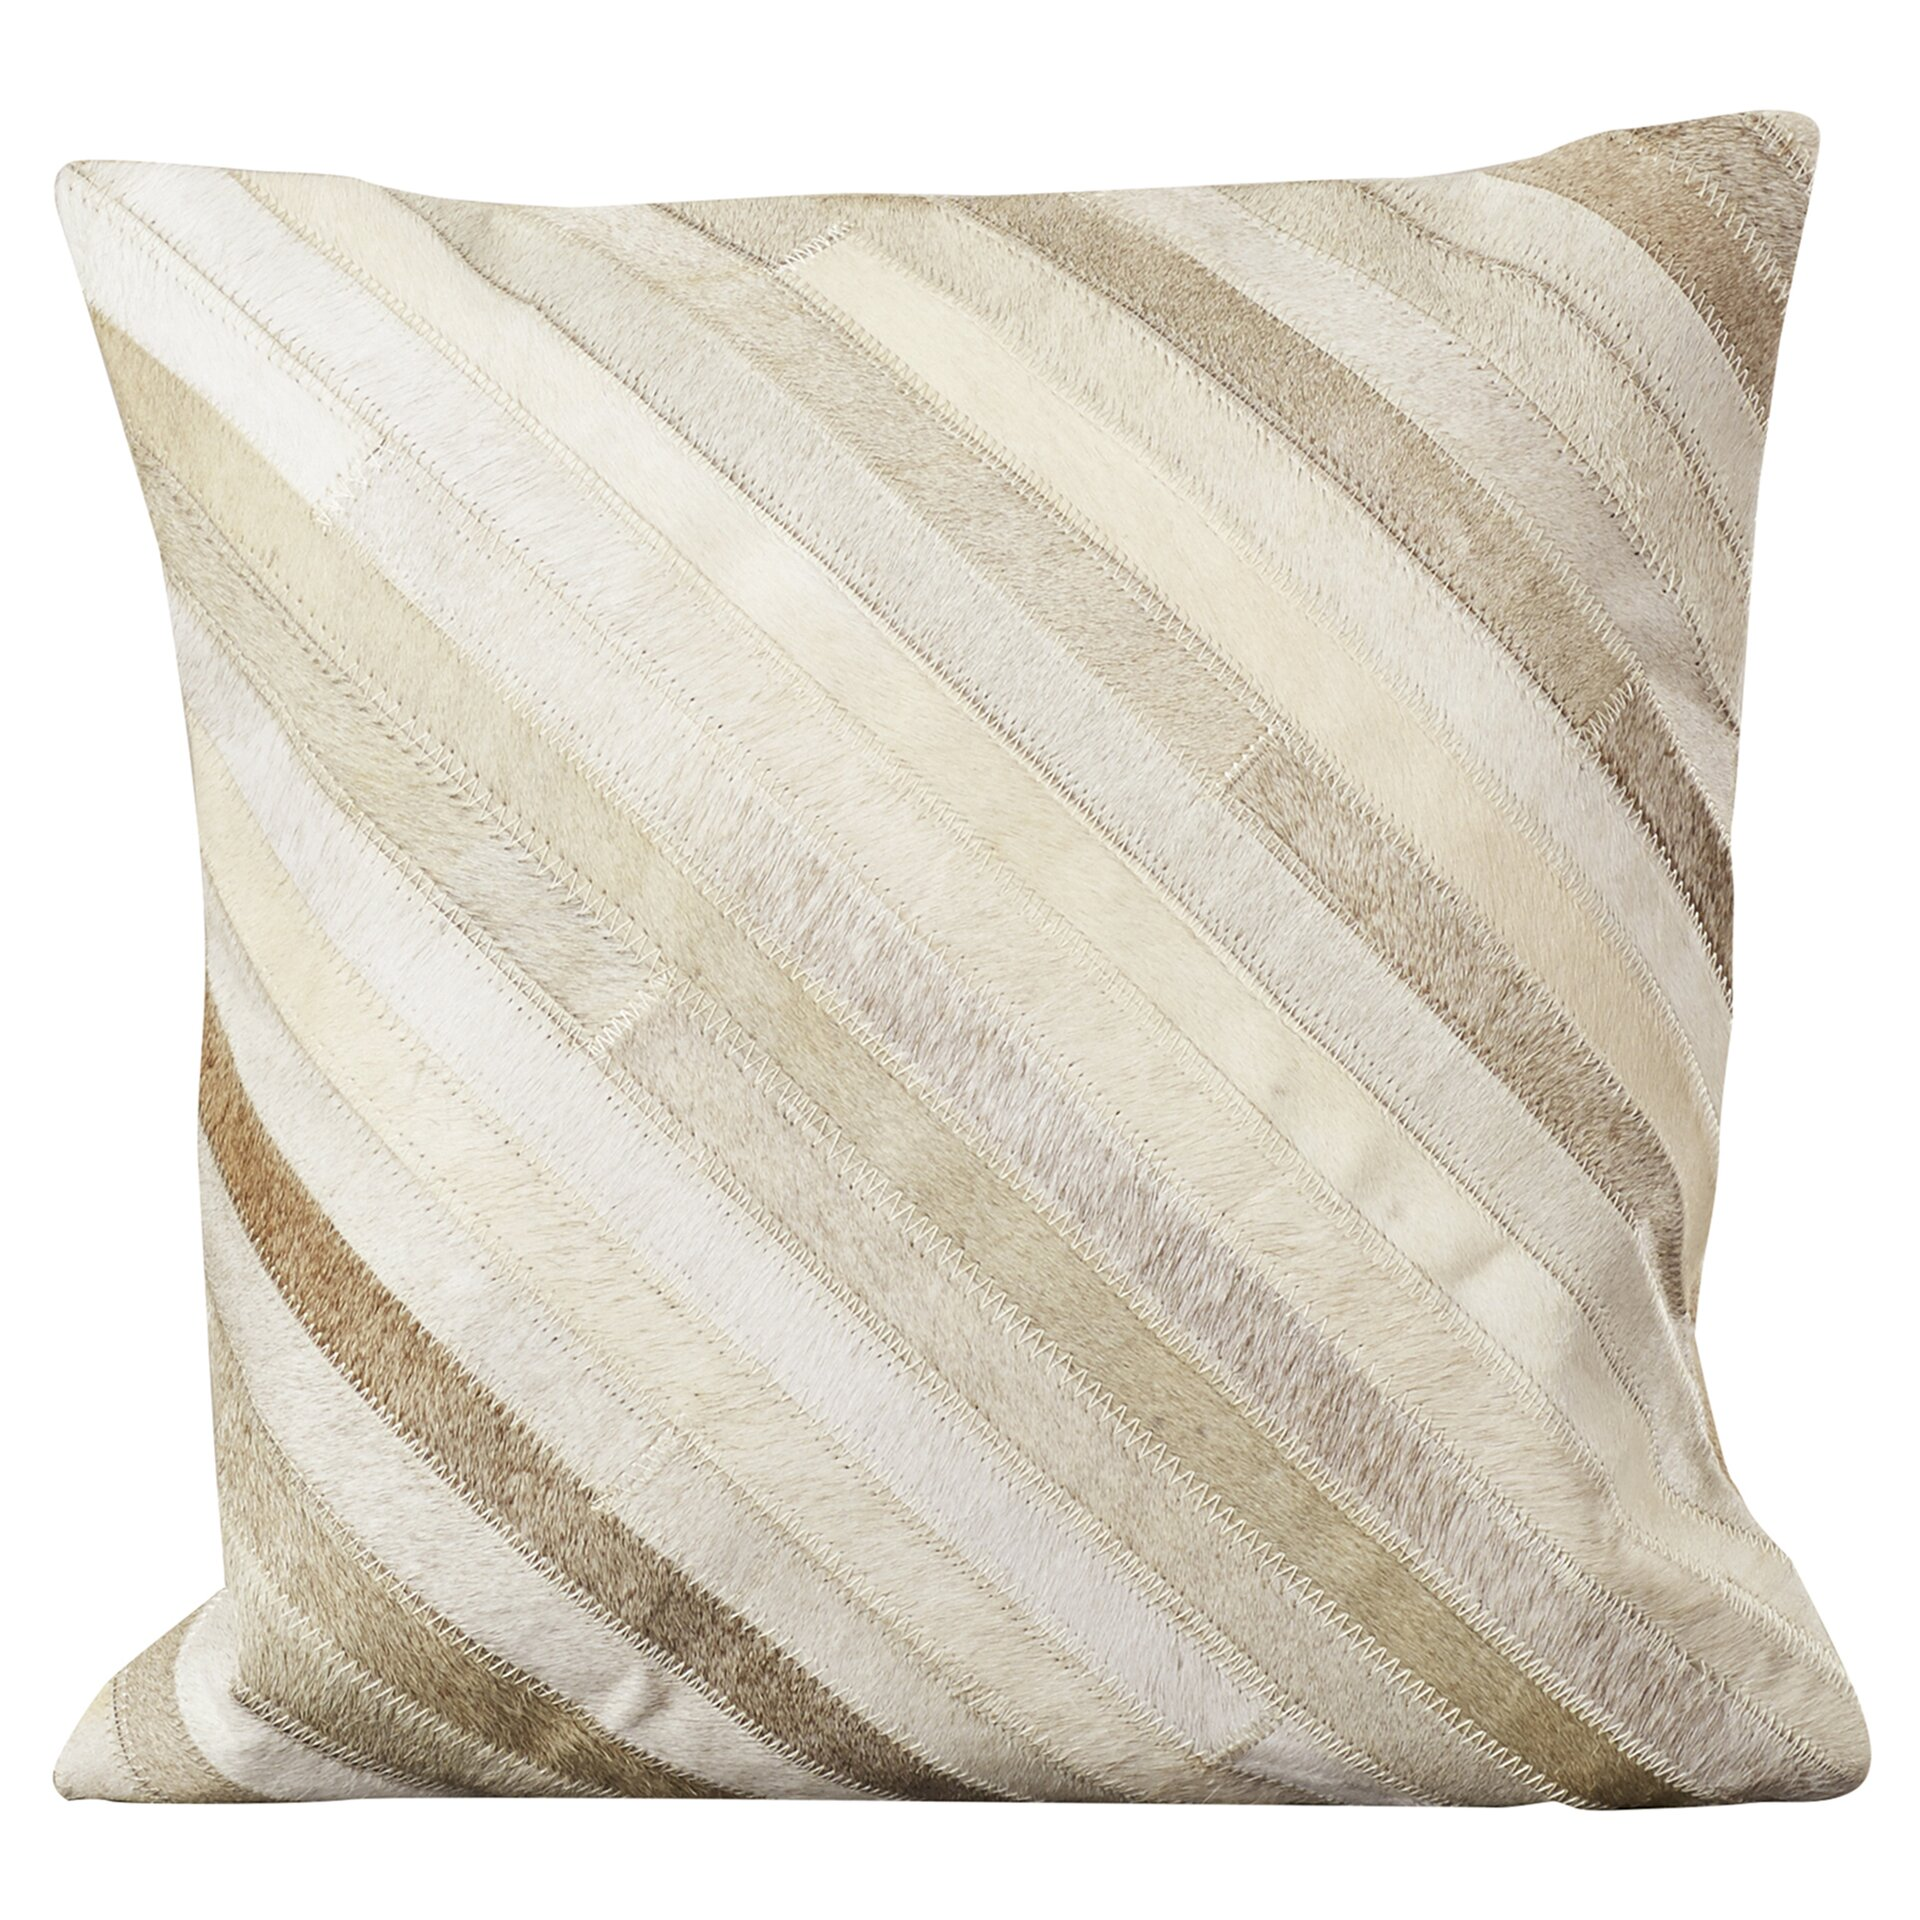 Decorative Pillows Feather : Brayden Studio Whitchurch Feather Throw Pillow & Reviews Wayfair